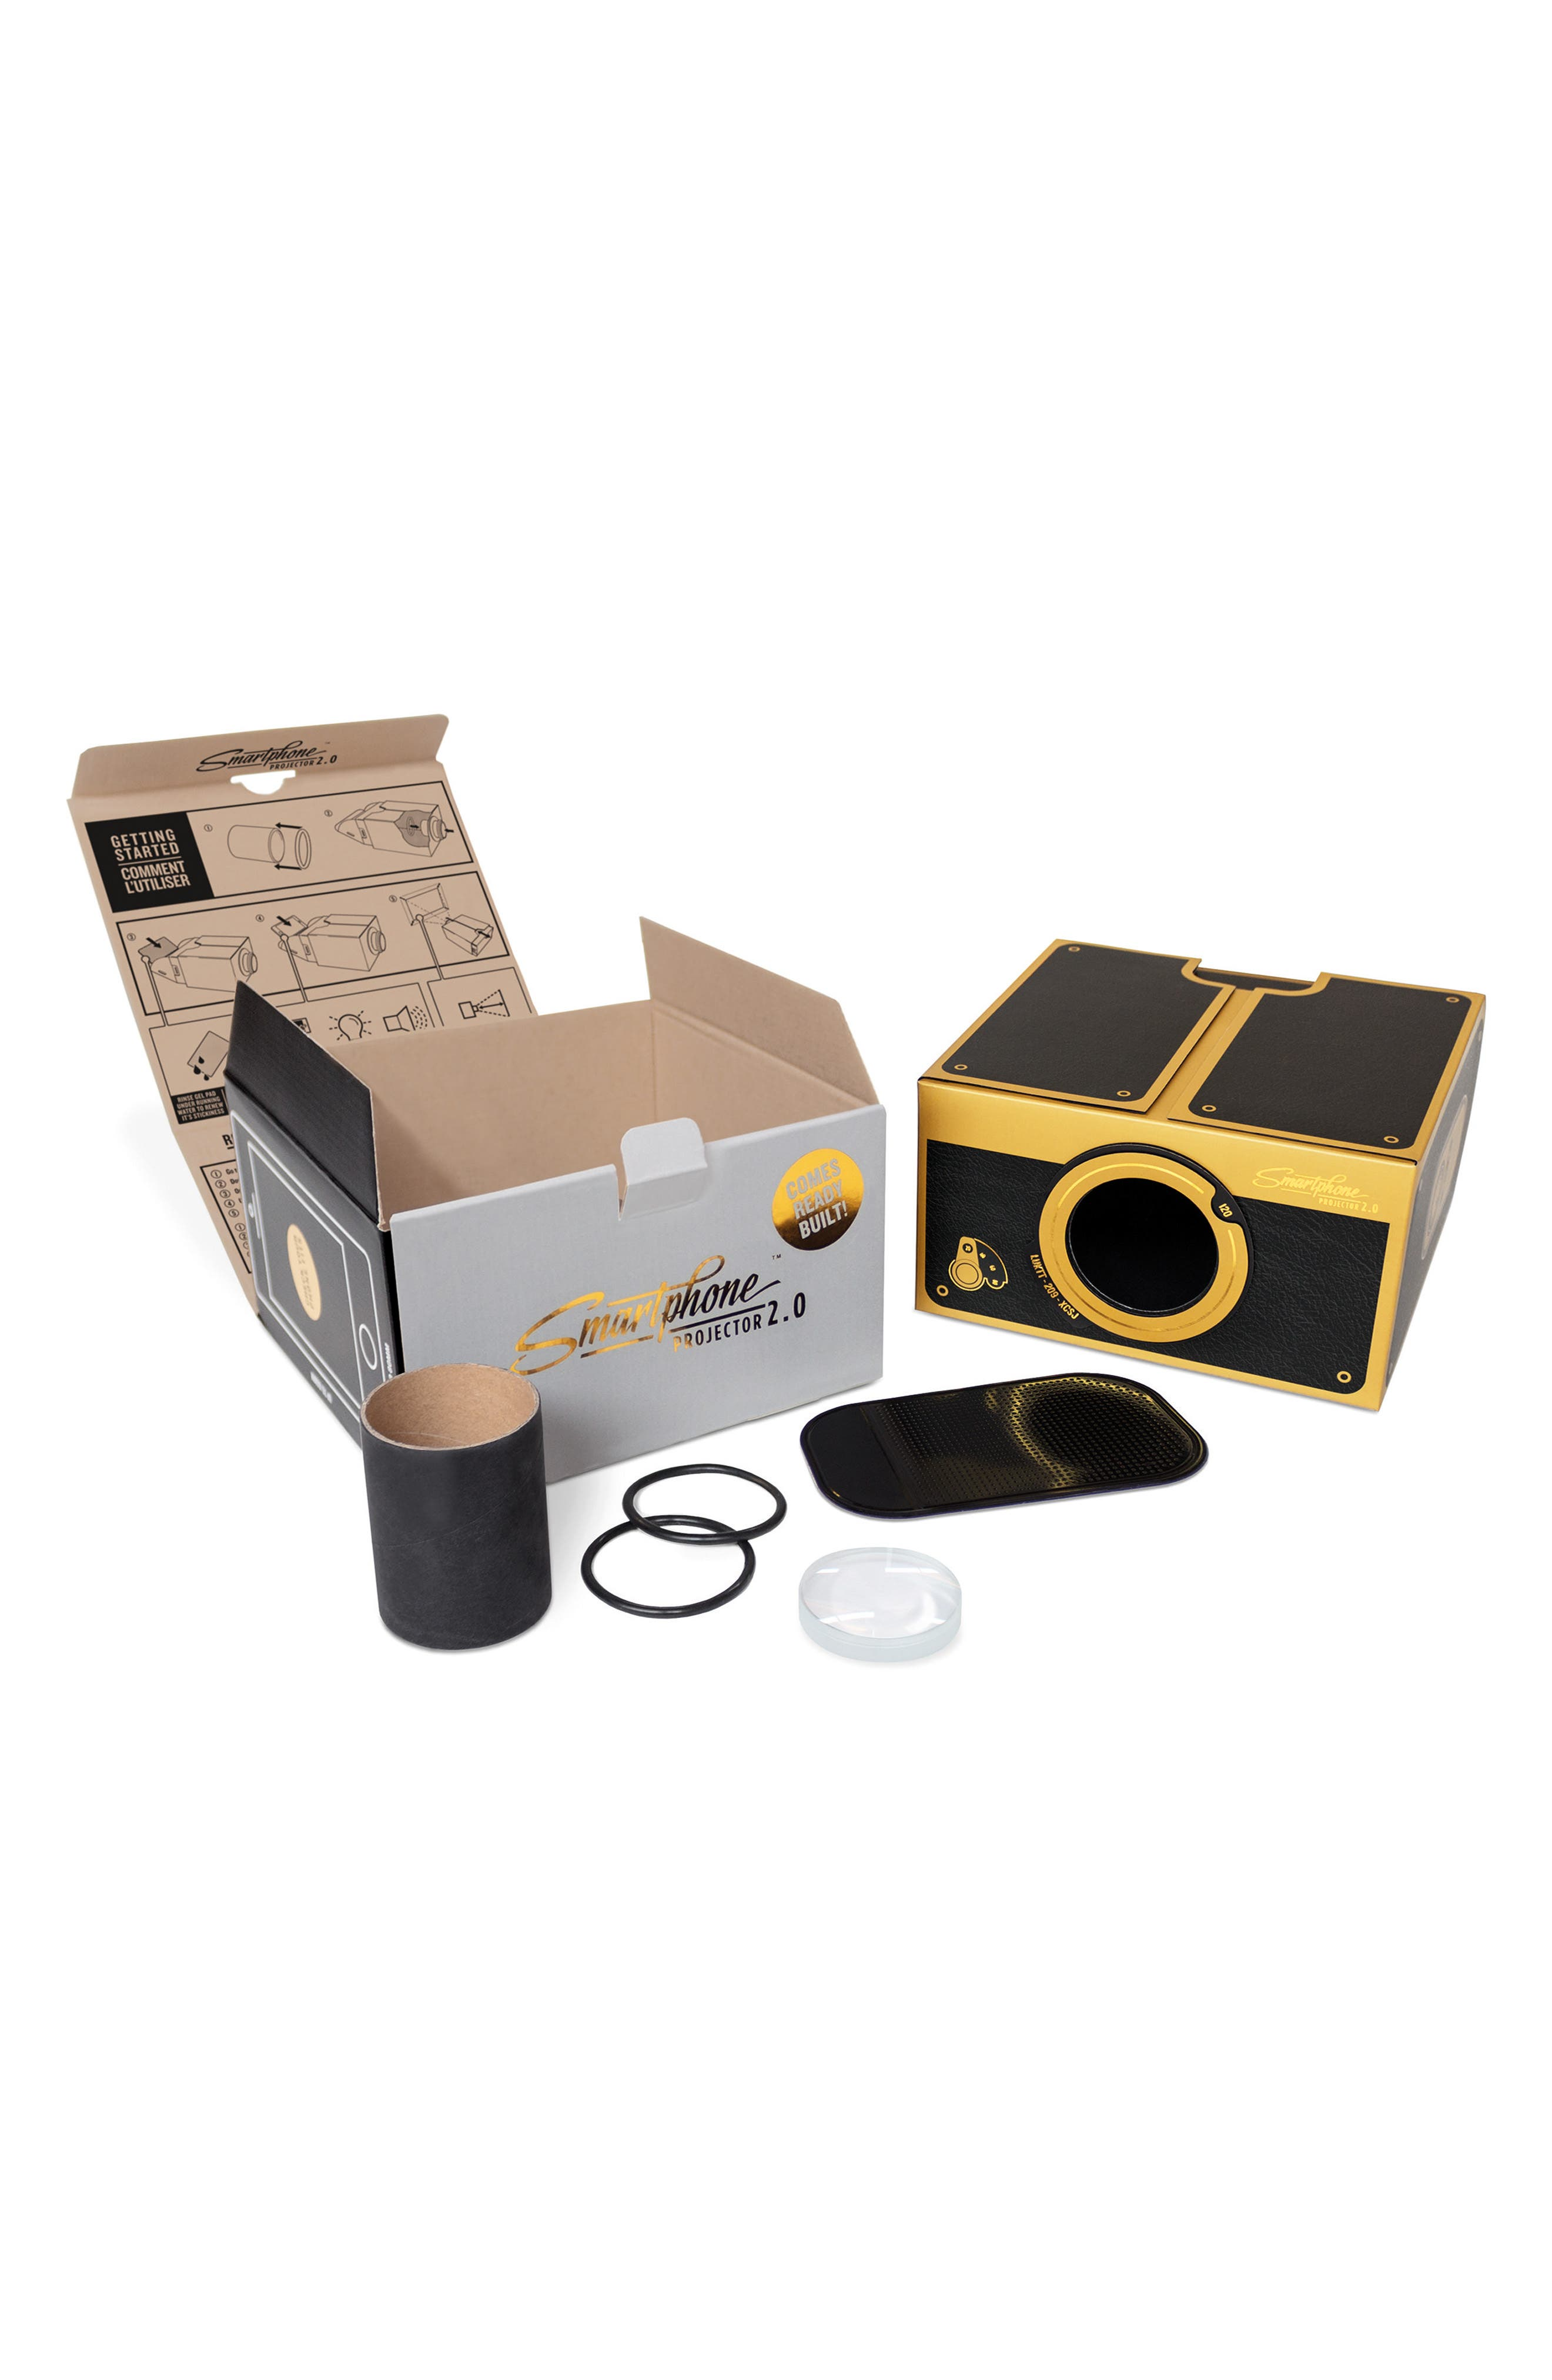 Smartphone Projector 2.0,                             Alternate thumbnail 2, color,                             001